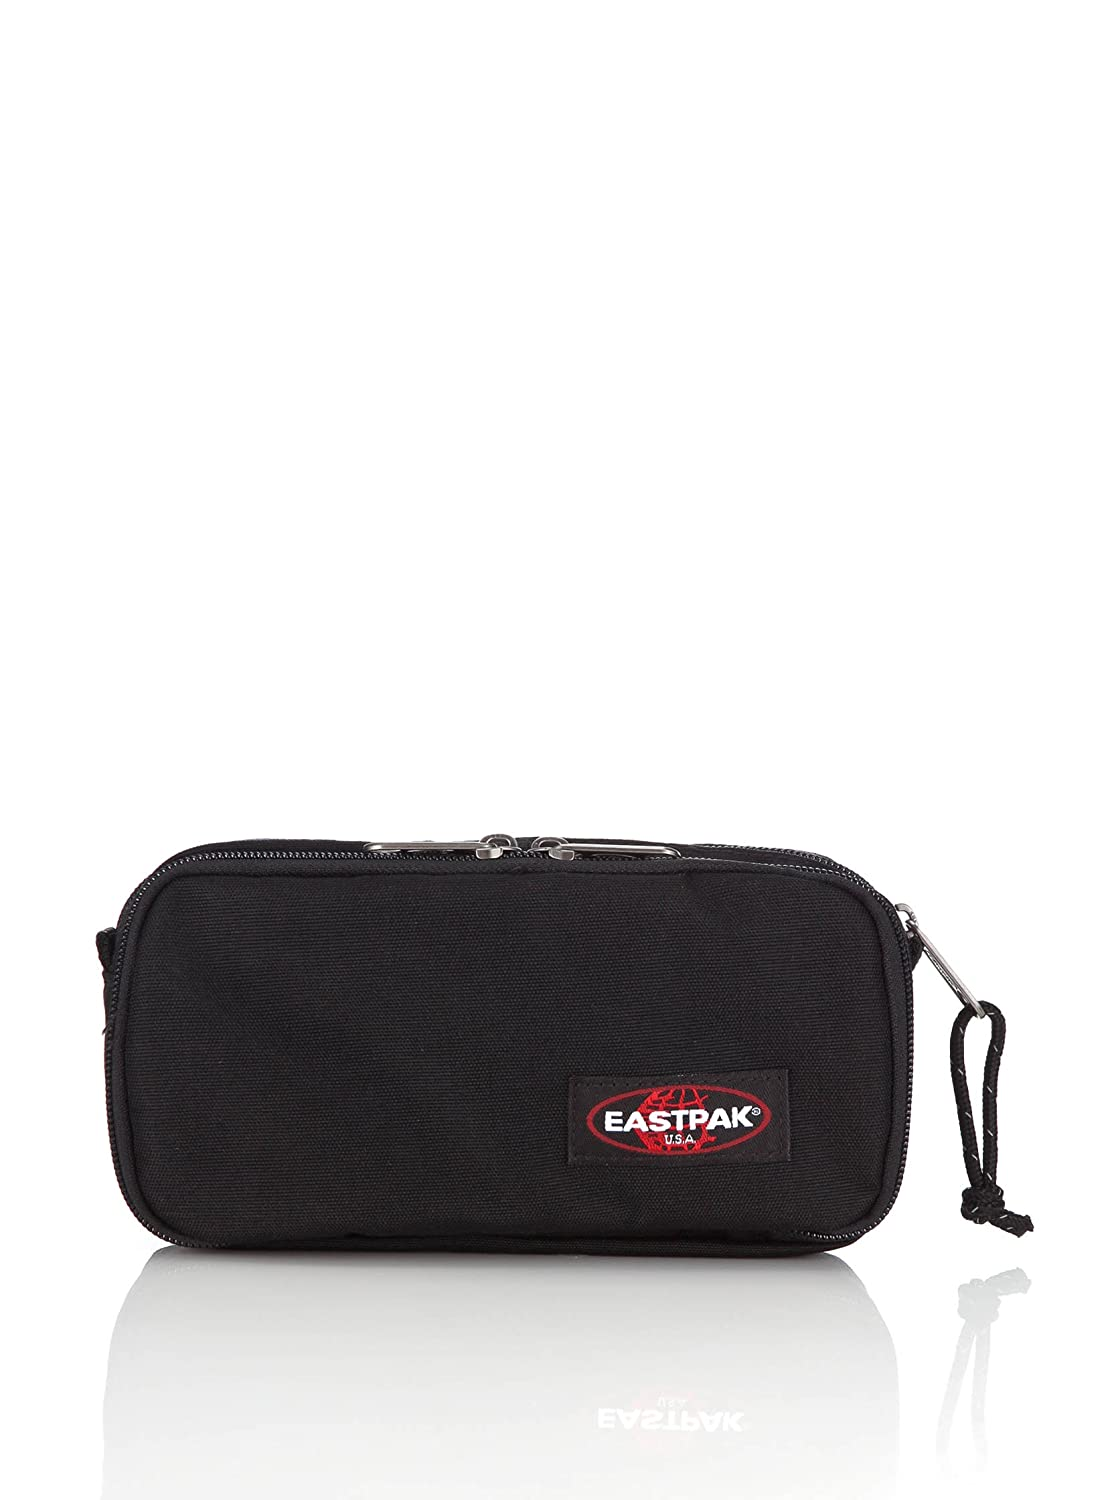 Eastpak Kulturtasche TOUR VAN 12, Black,